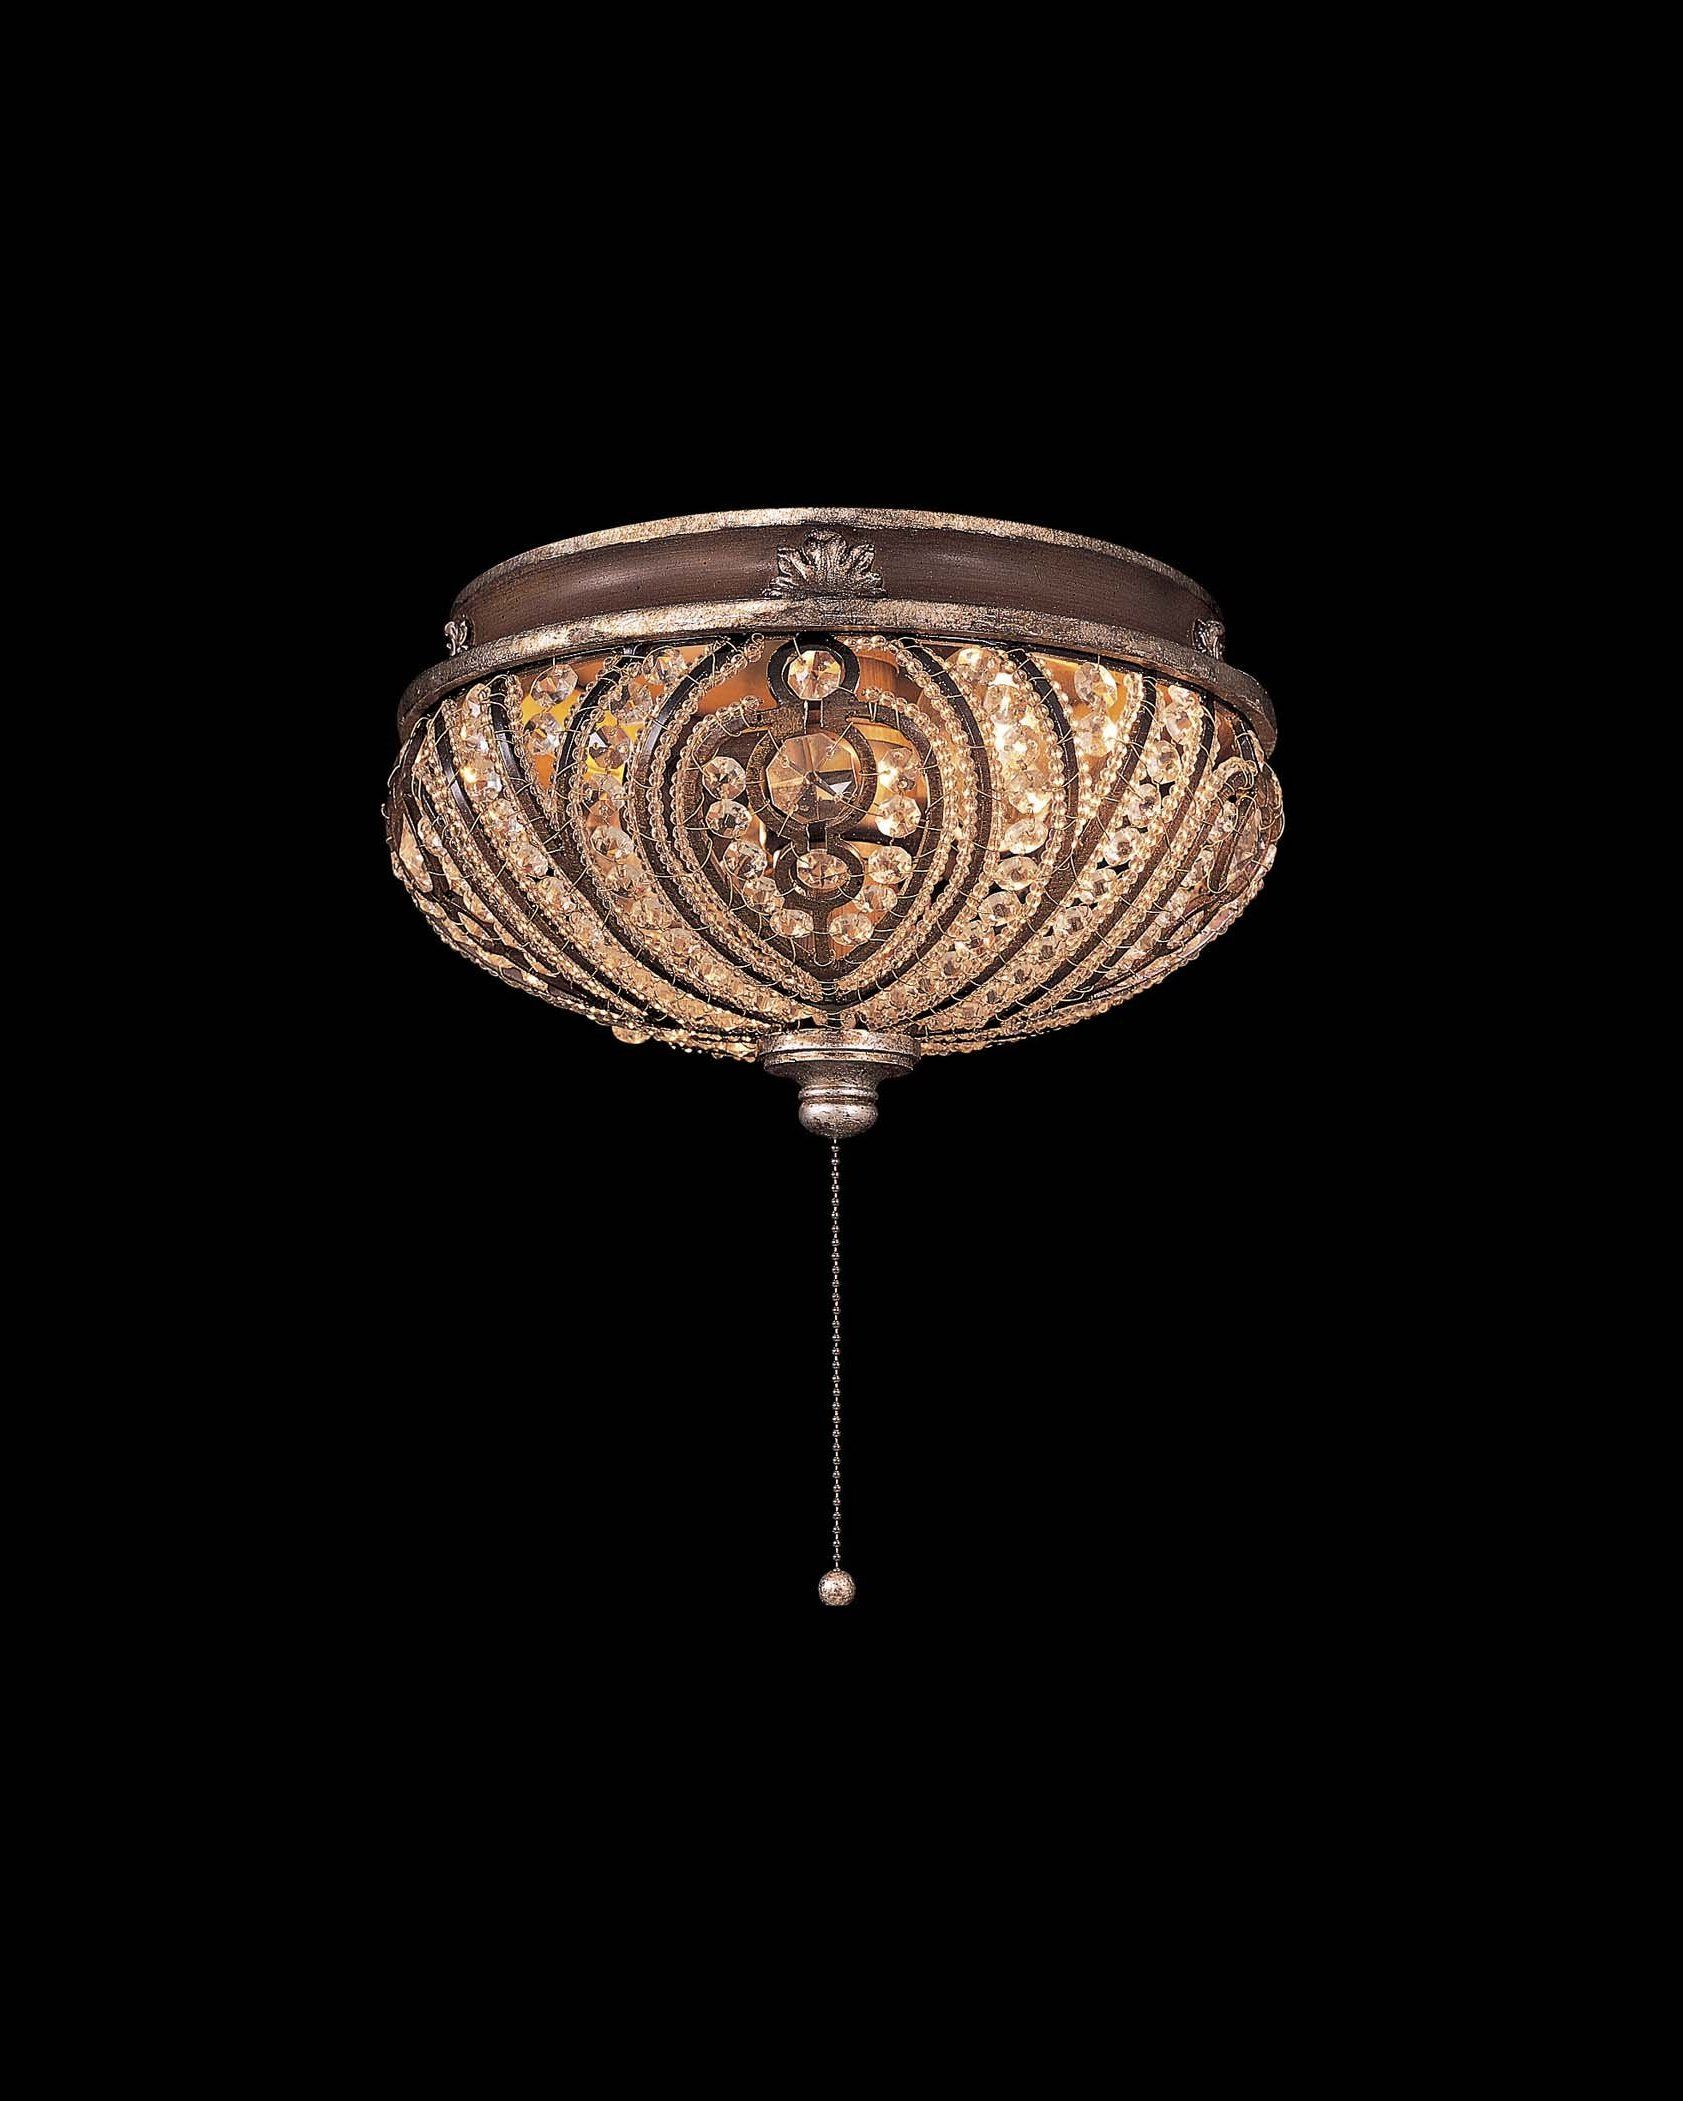 Ceiling Mount Light With Pull Chain Awesome Portrayal Of Pull Chain Ceiling Light Fixture For Interesting Inspiration Design